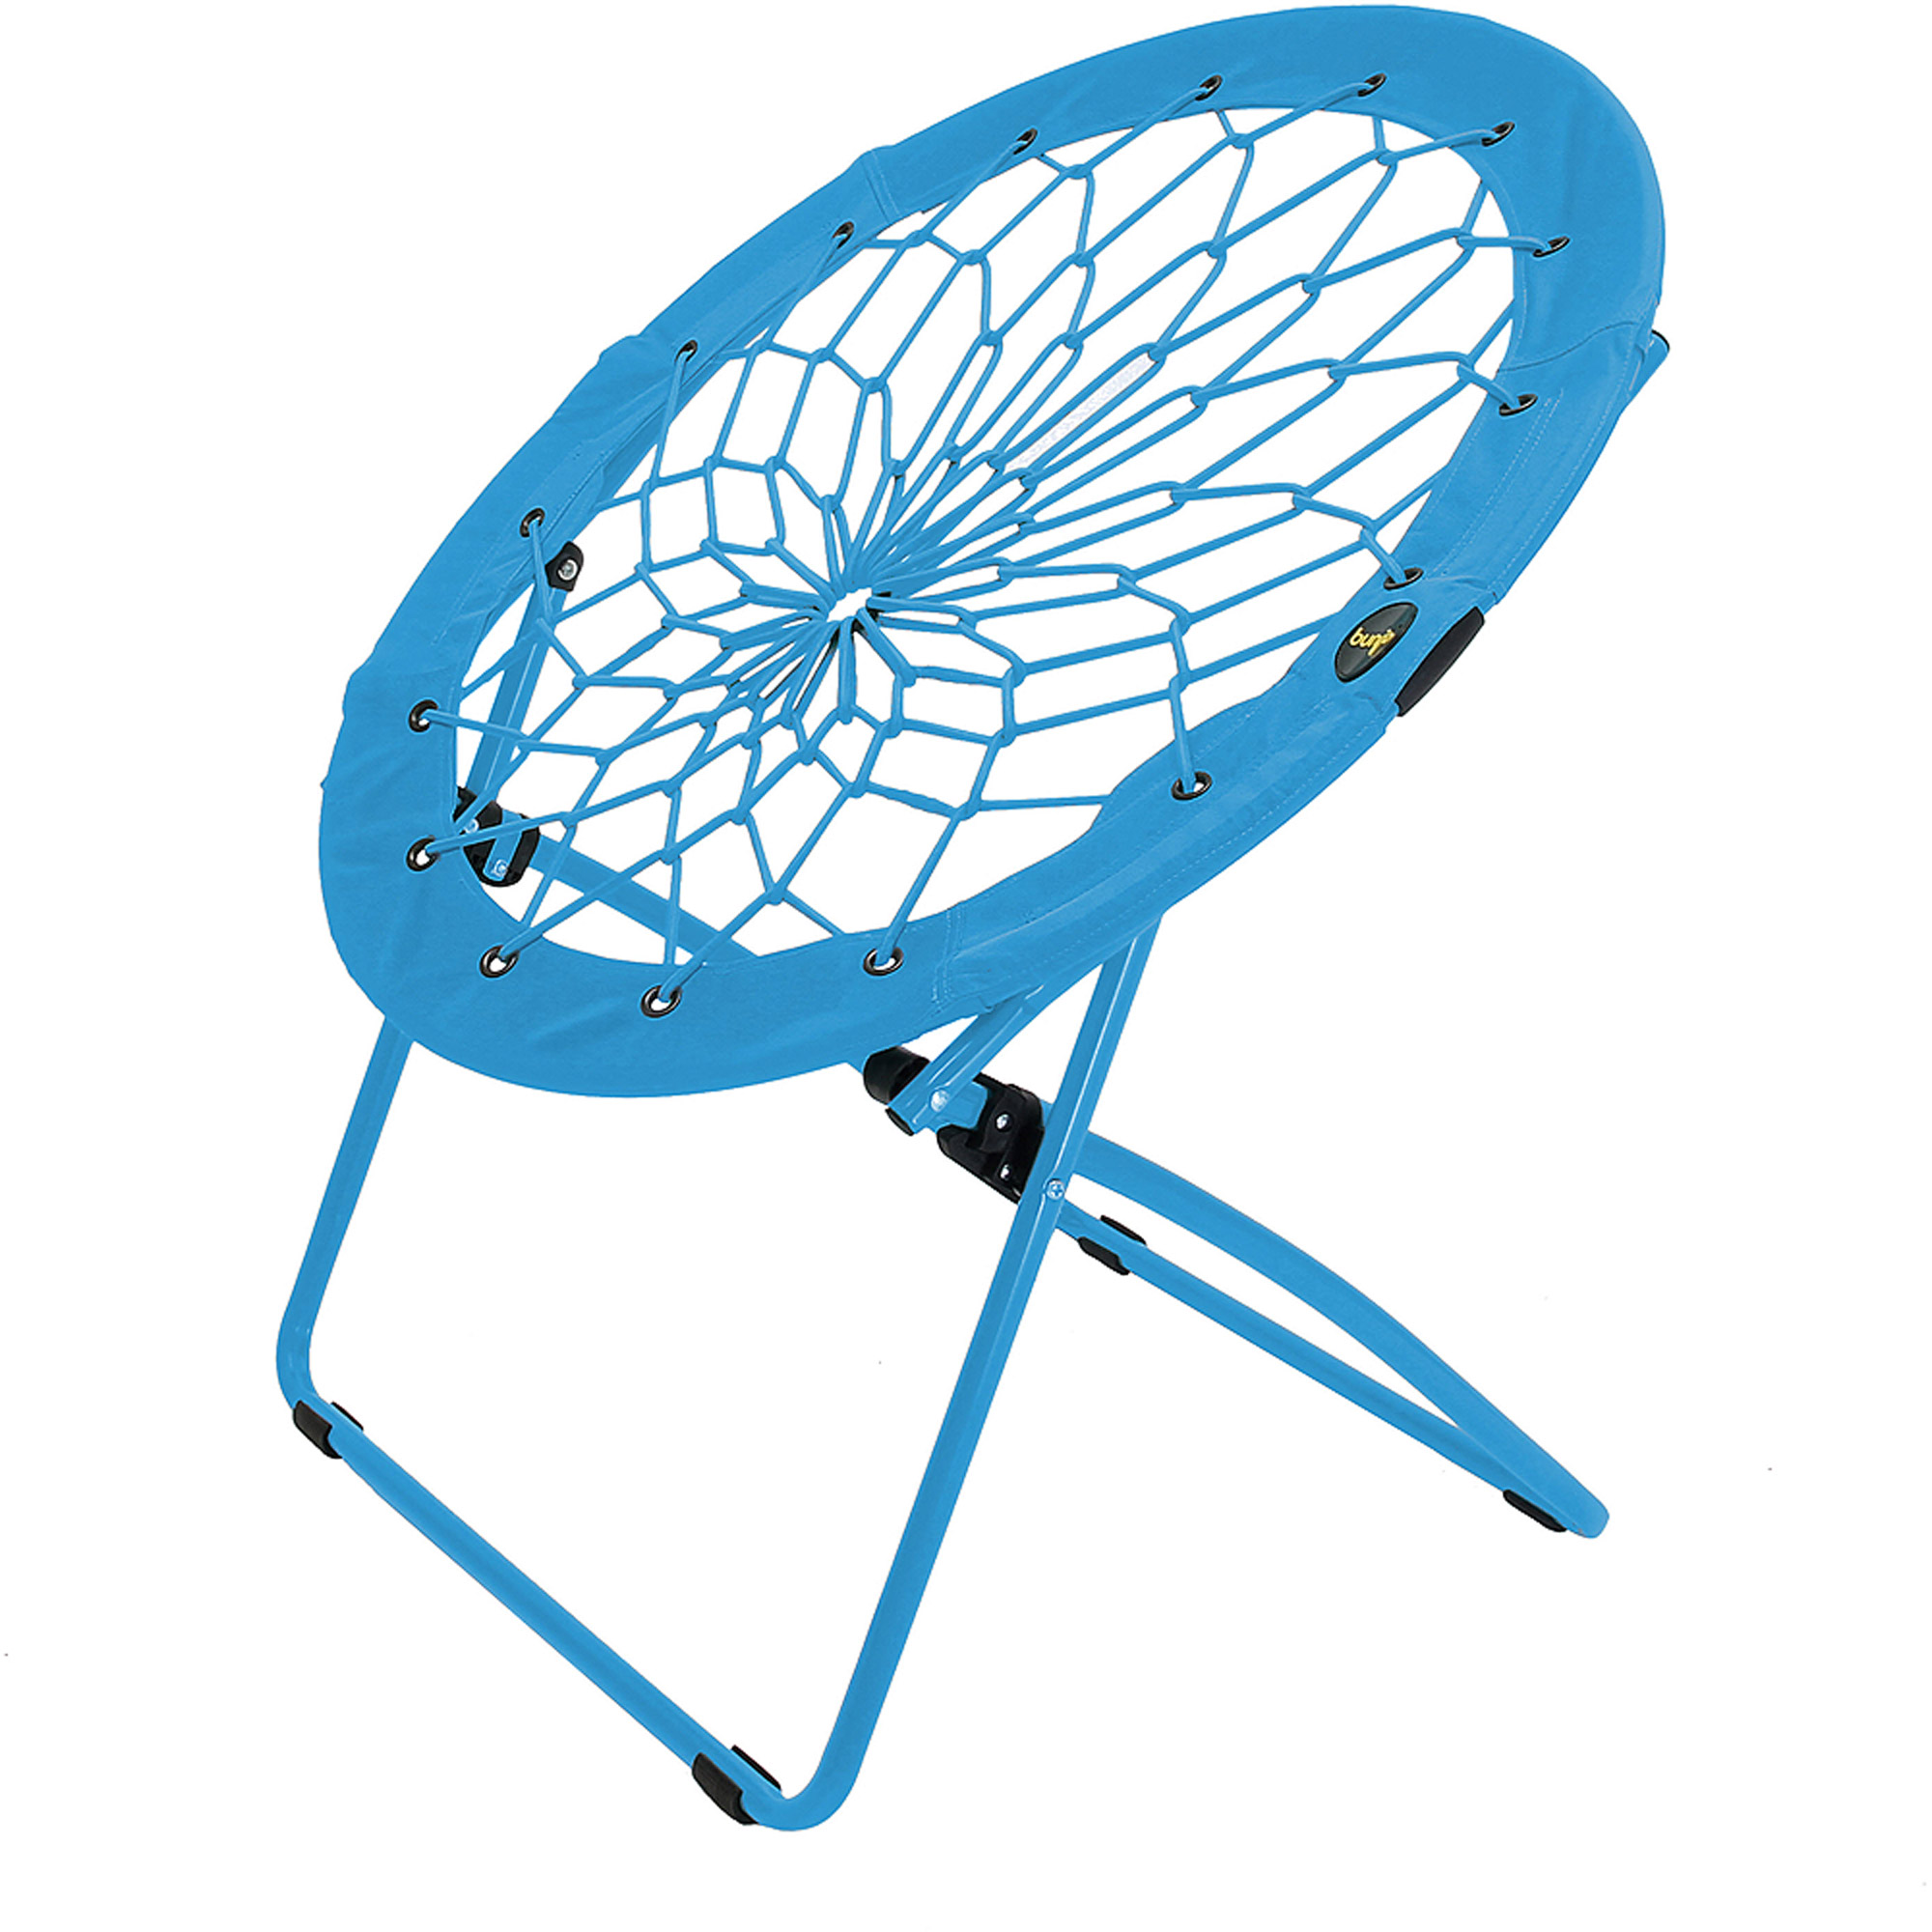 Strange 32 Bunjo Bungee Chair Available In Multiple Colors Unemploymentrelief Wooden Chair Designs For Living Room Unemploymentrelieforg